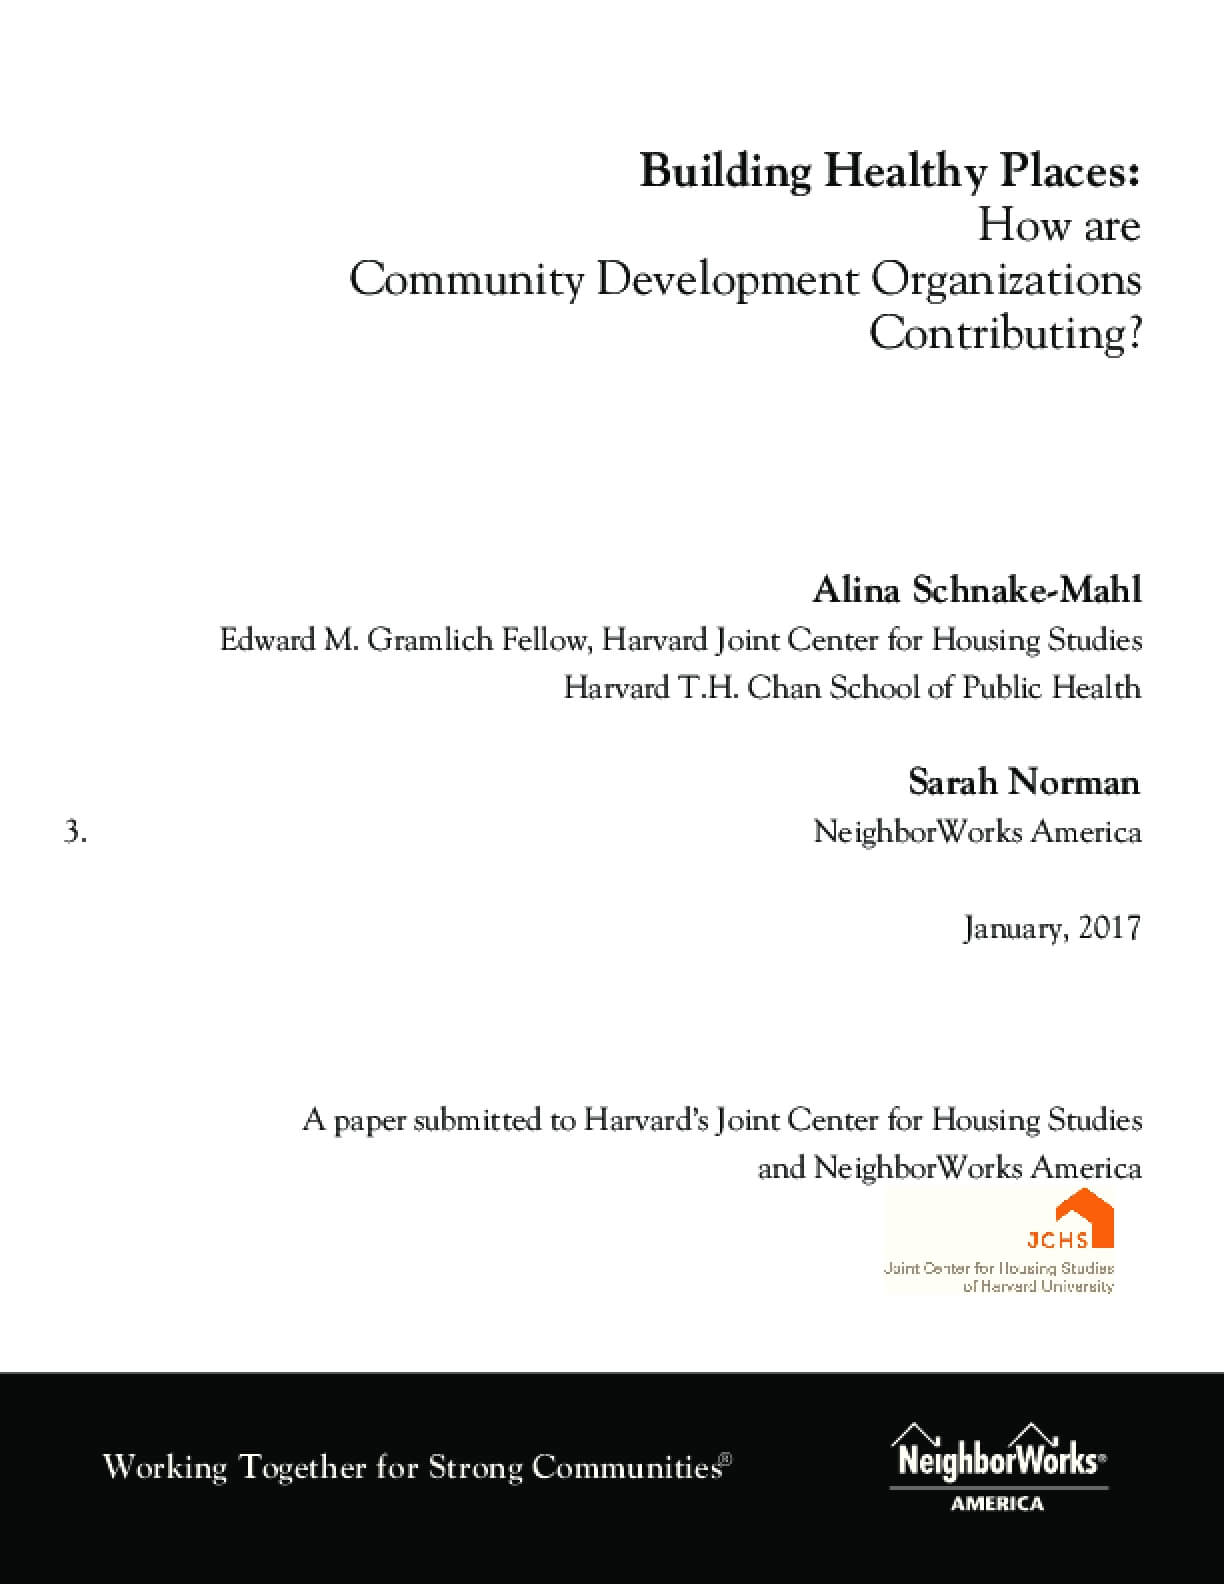 Building Healthy Places: How are Community Development Organizations Contributing?